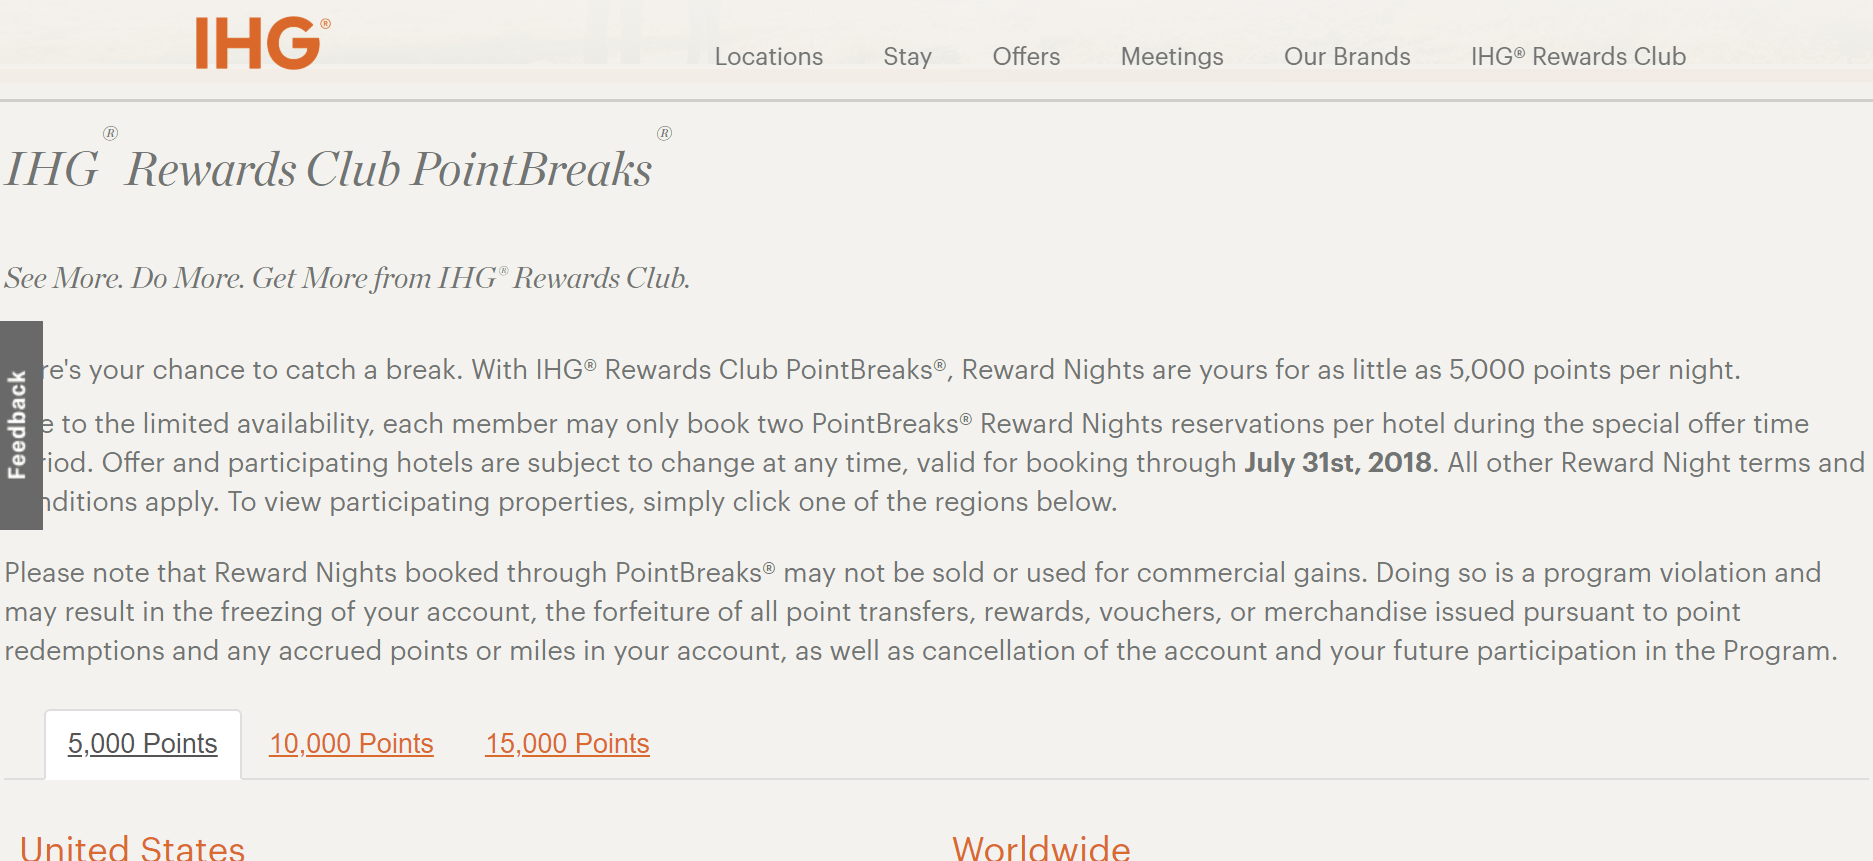 5 Ways to Earn IHG Points and Benefit from their Rewards Program